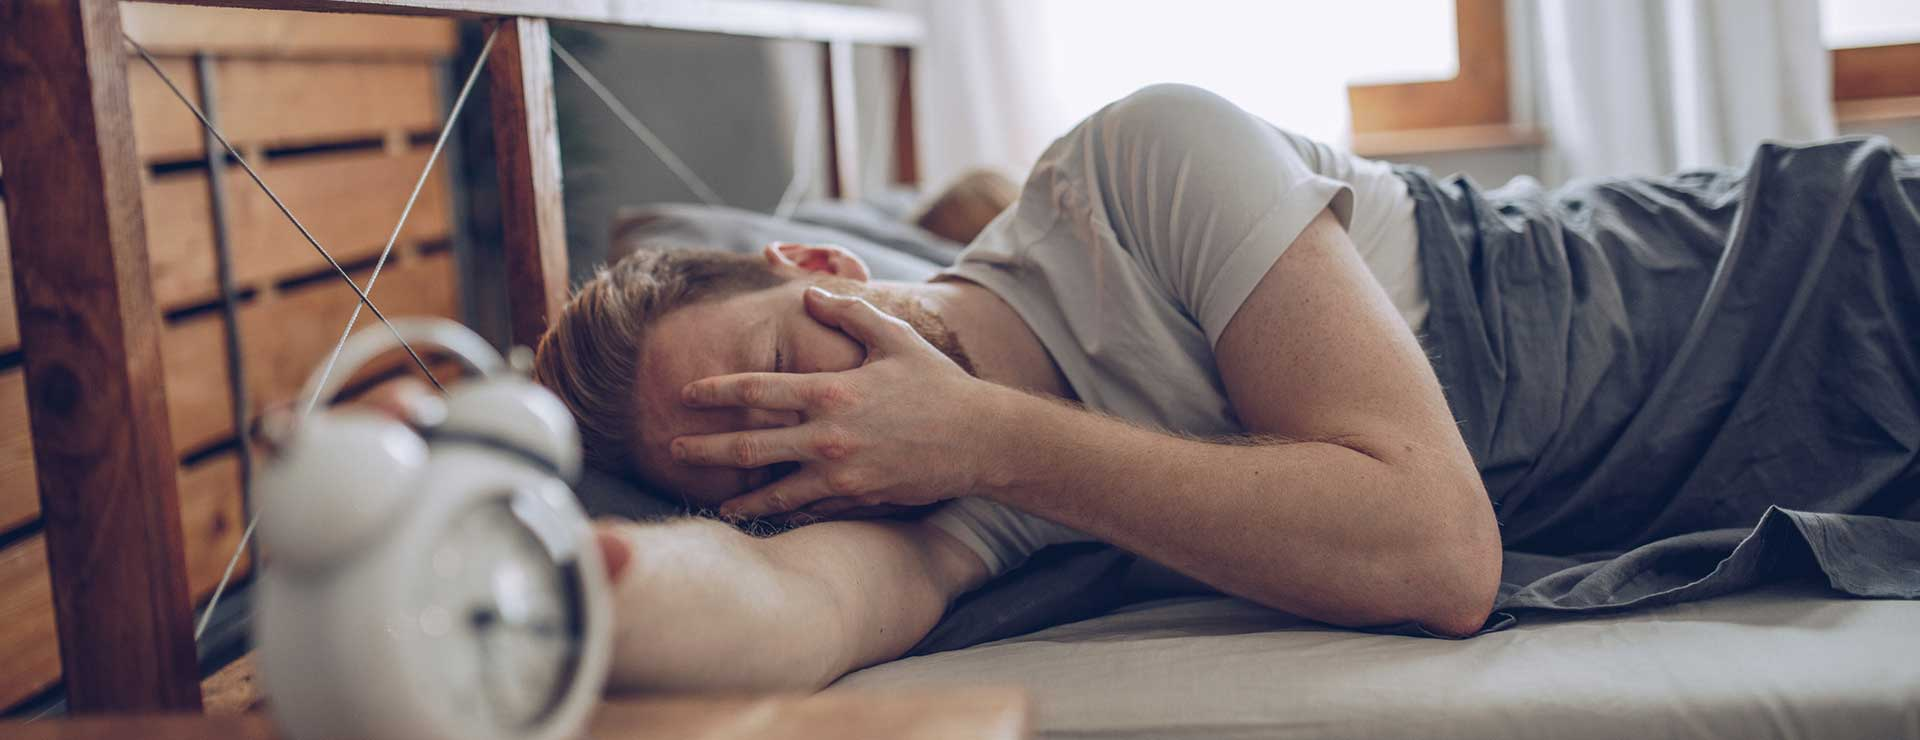 Man reaching for alarm clock while waking up